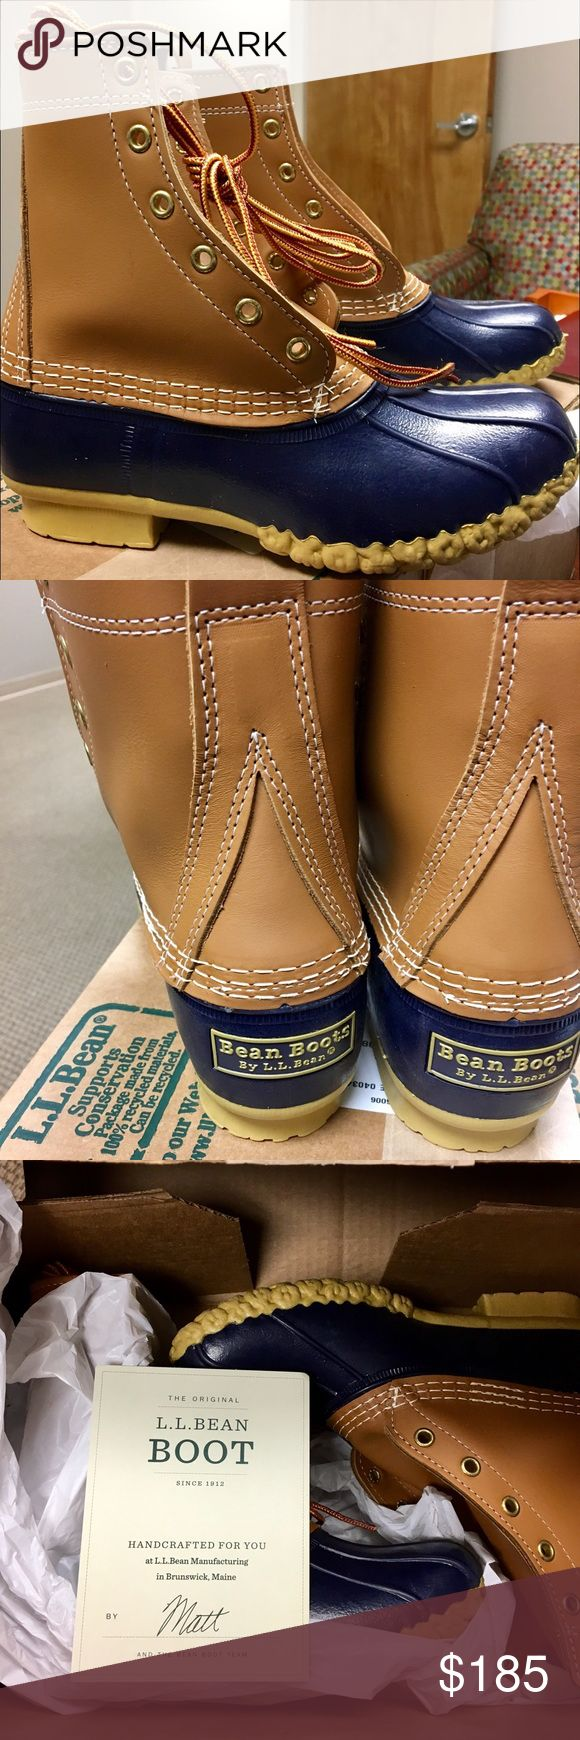 "NWT L.L. Bean Boots Women's 8"". Navy, Sz. 6 Sold out online. I purchased as a Christmas gift but unfortunately they are not the correct size. L.L. Bean Shoes"